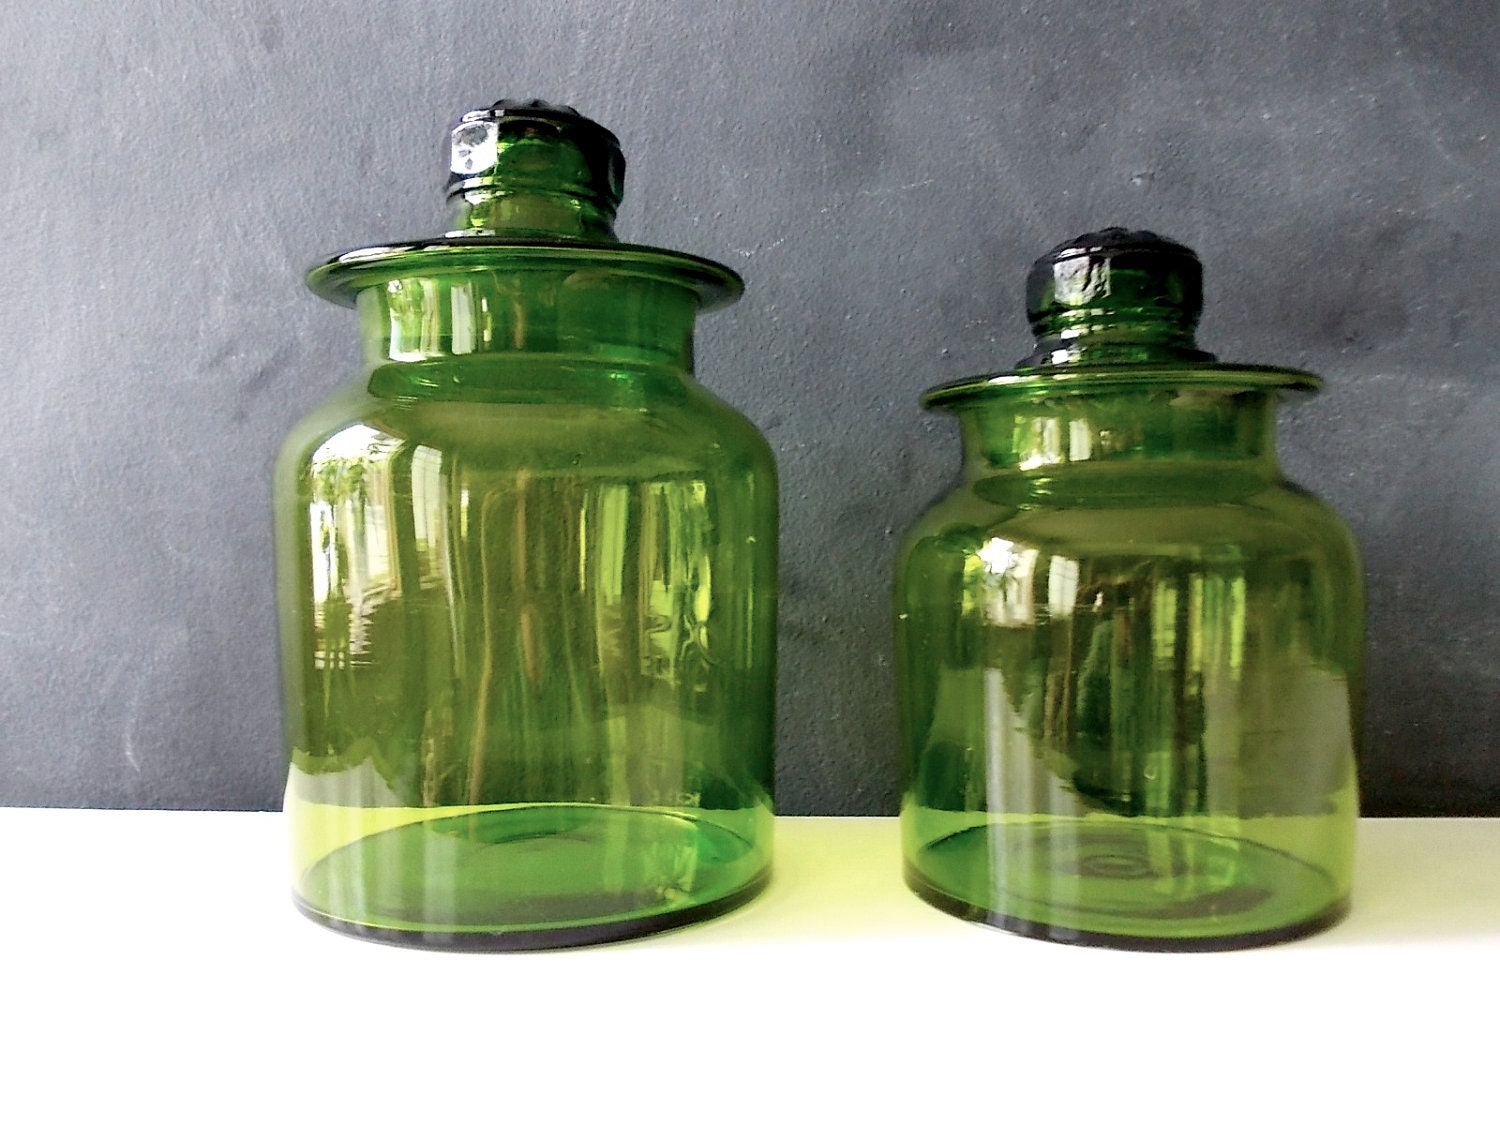 Kitchen Storage Canisters Antique Glass Apothecary Jars Blown Green Glass Bottles